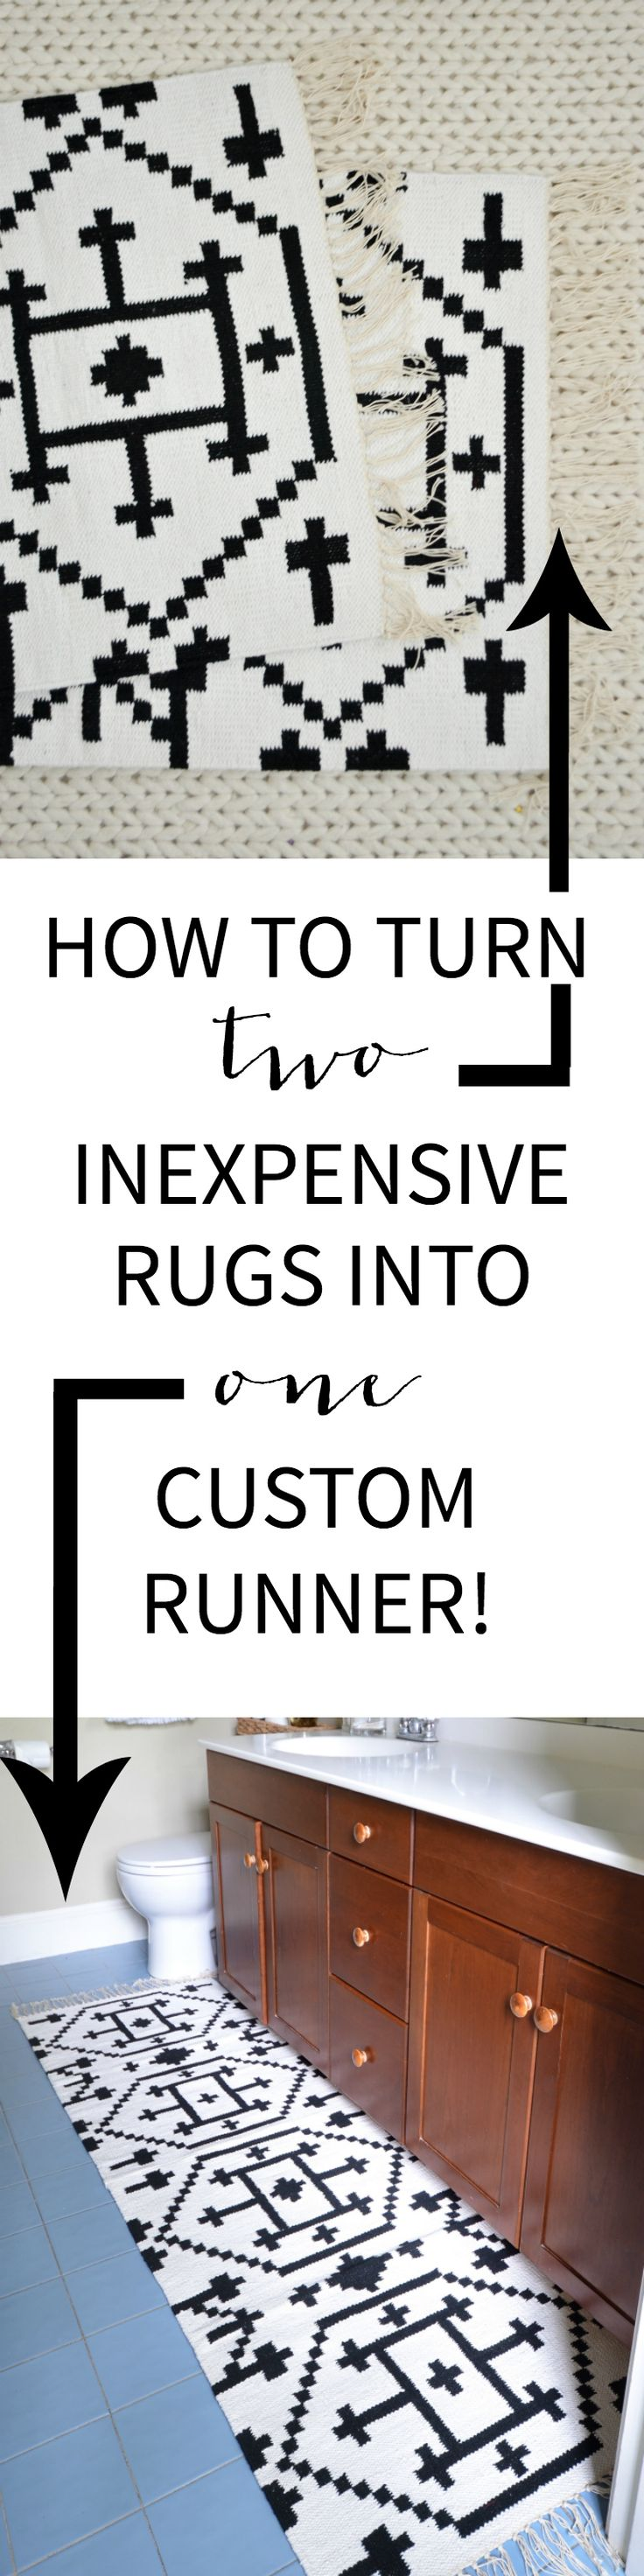 Super simple tutorial showing you how to sew two small rugs together so you can customize the size or just save some money while decorating!